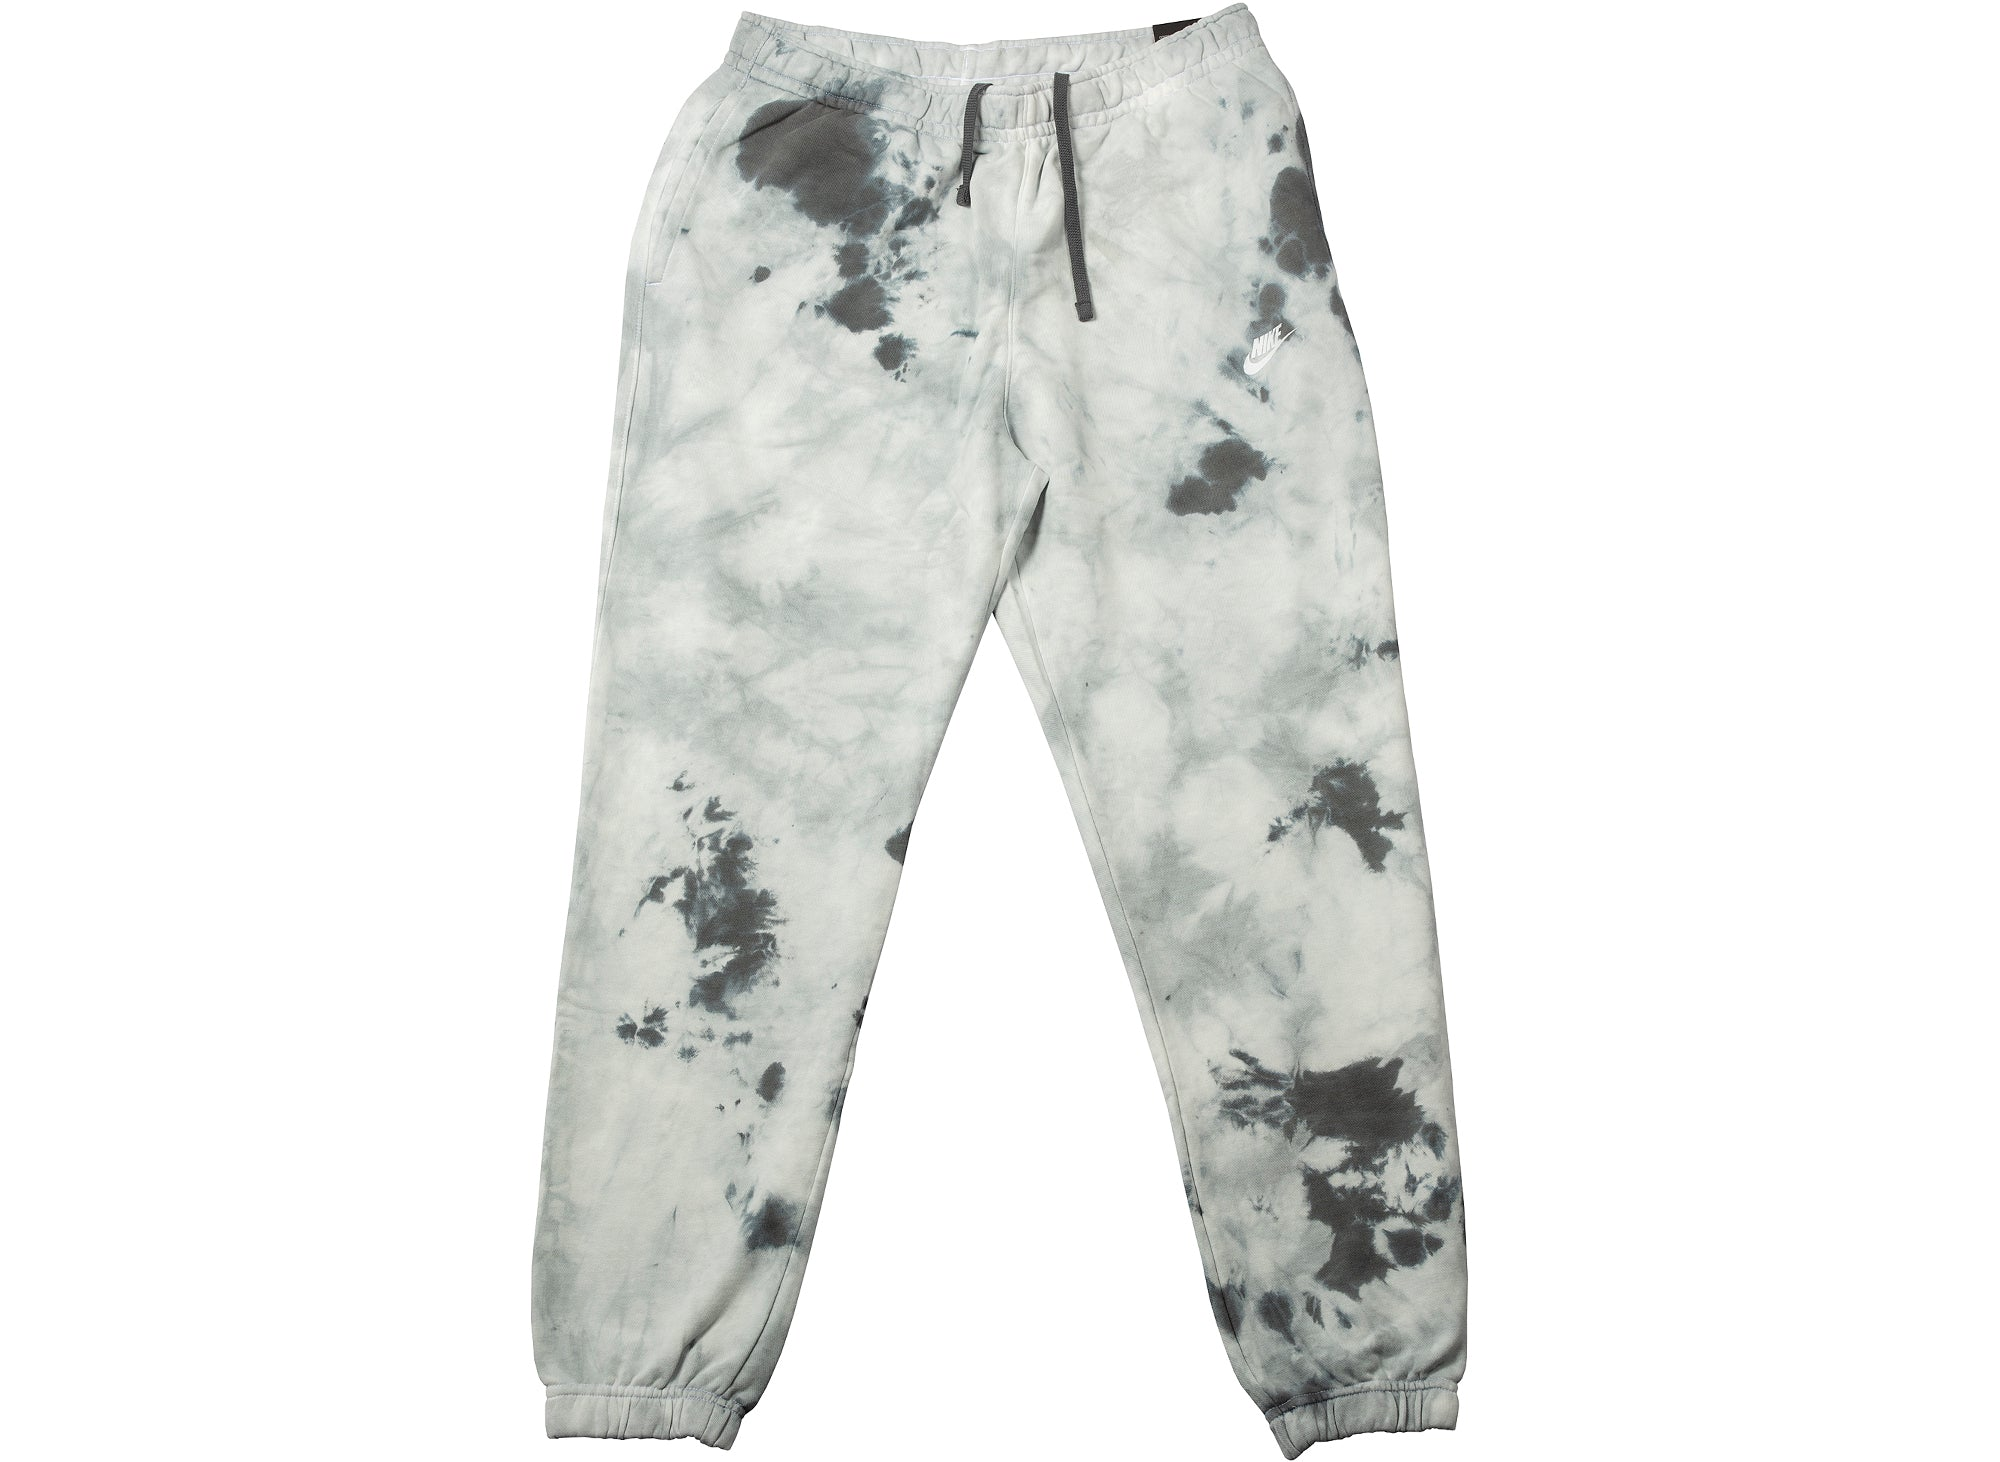 Men's Nike NSW Tie-Dye Sportswear Club Fleece xld